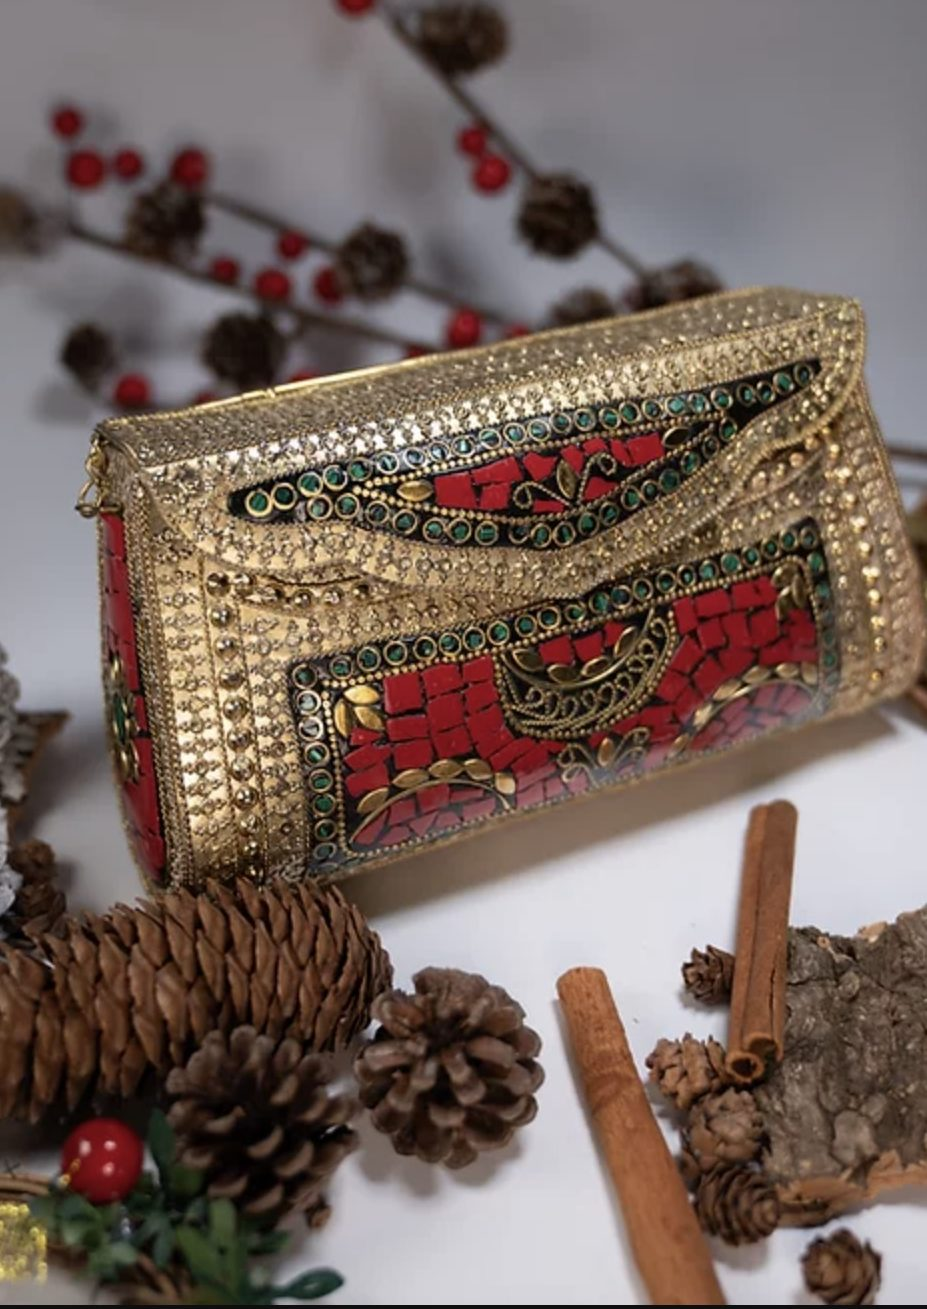 [Image Description: A gold and red metal clutch.] Via Oraniq Living